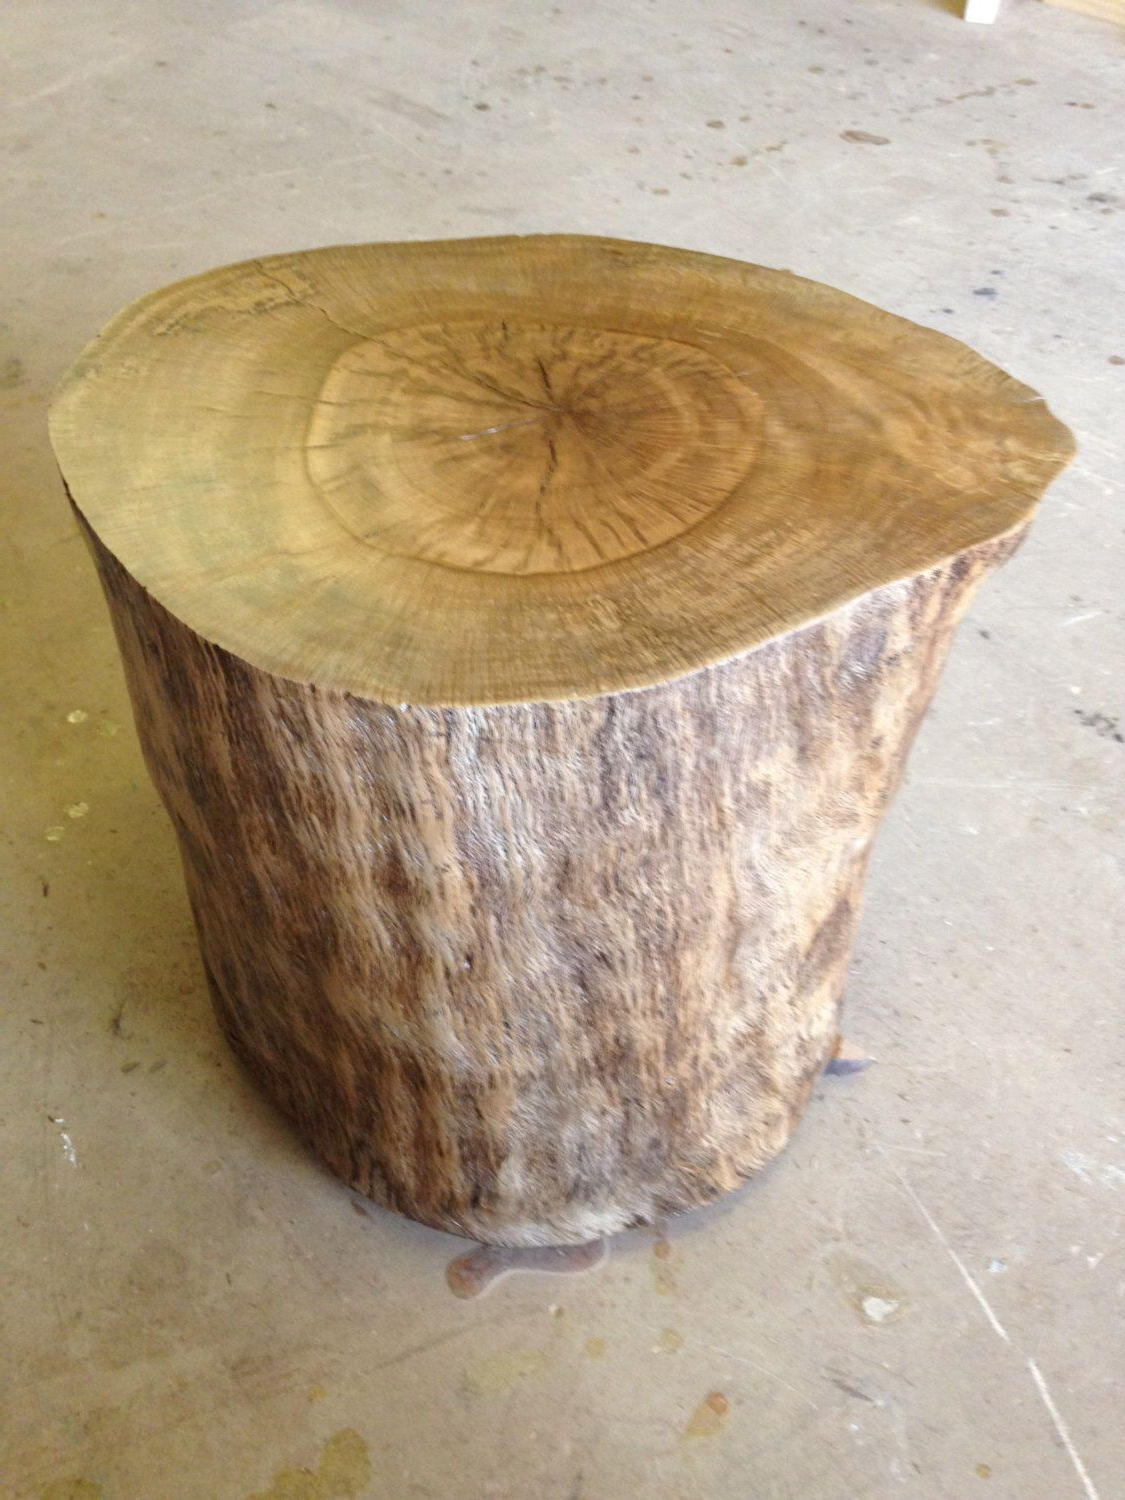 Latest Moraga Barrel Coffee Tables Within Wood Stump – Wood Stump Side Table – Wood Coffee Table – Tree Stump (View 15 of 20)